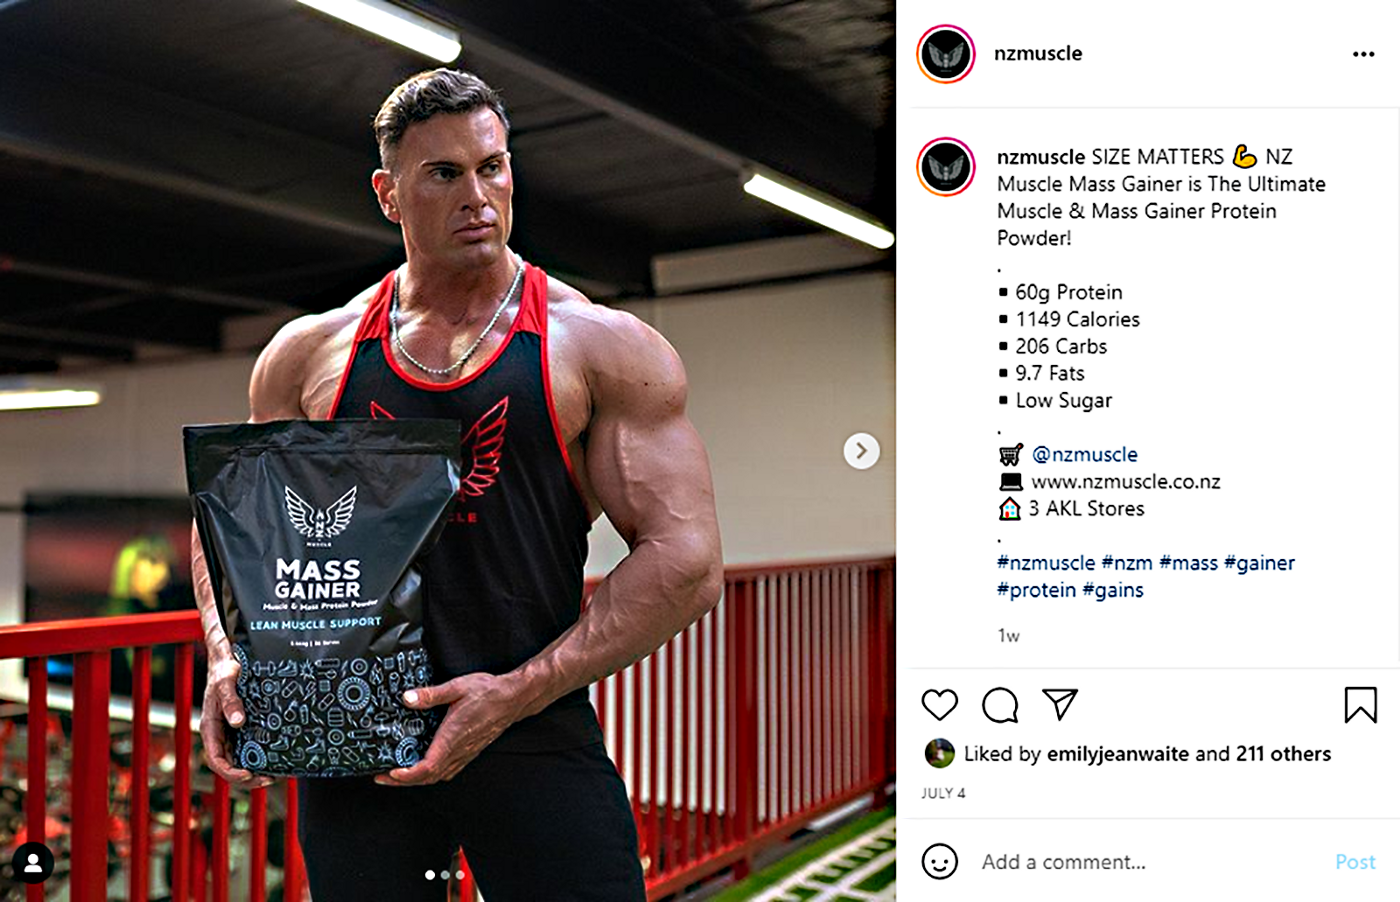 """IG post by nzmuscle """"SIZE MATTERS"""" with a photo of a man holding a large bag of """"Mass Gainer"""" protein powder"""